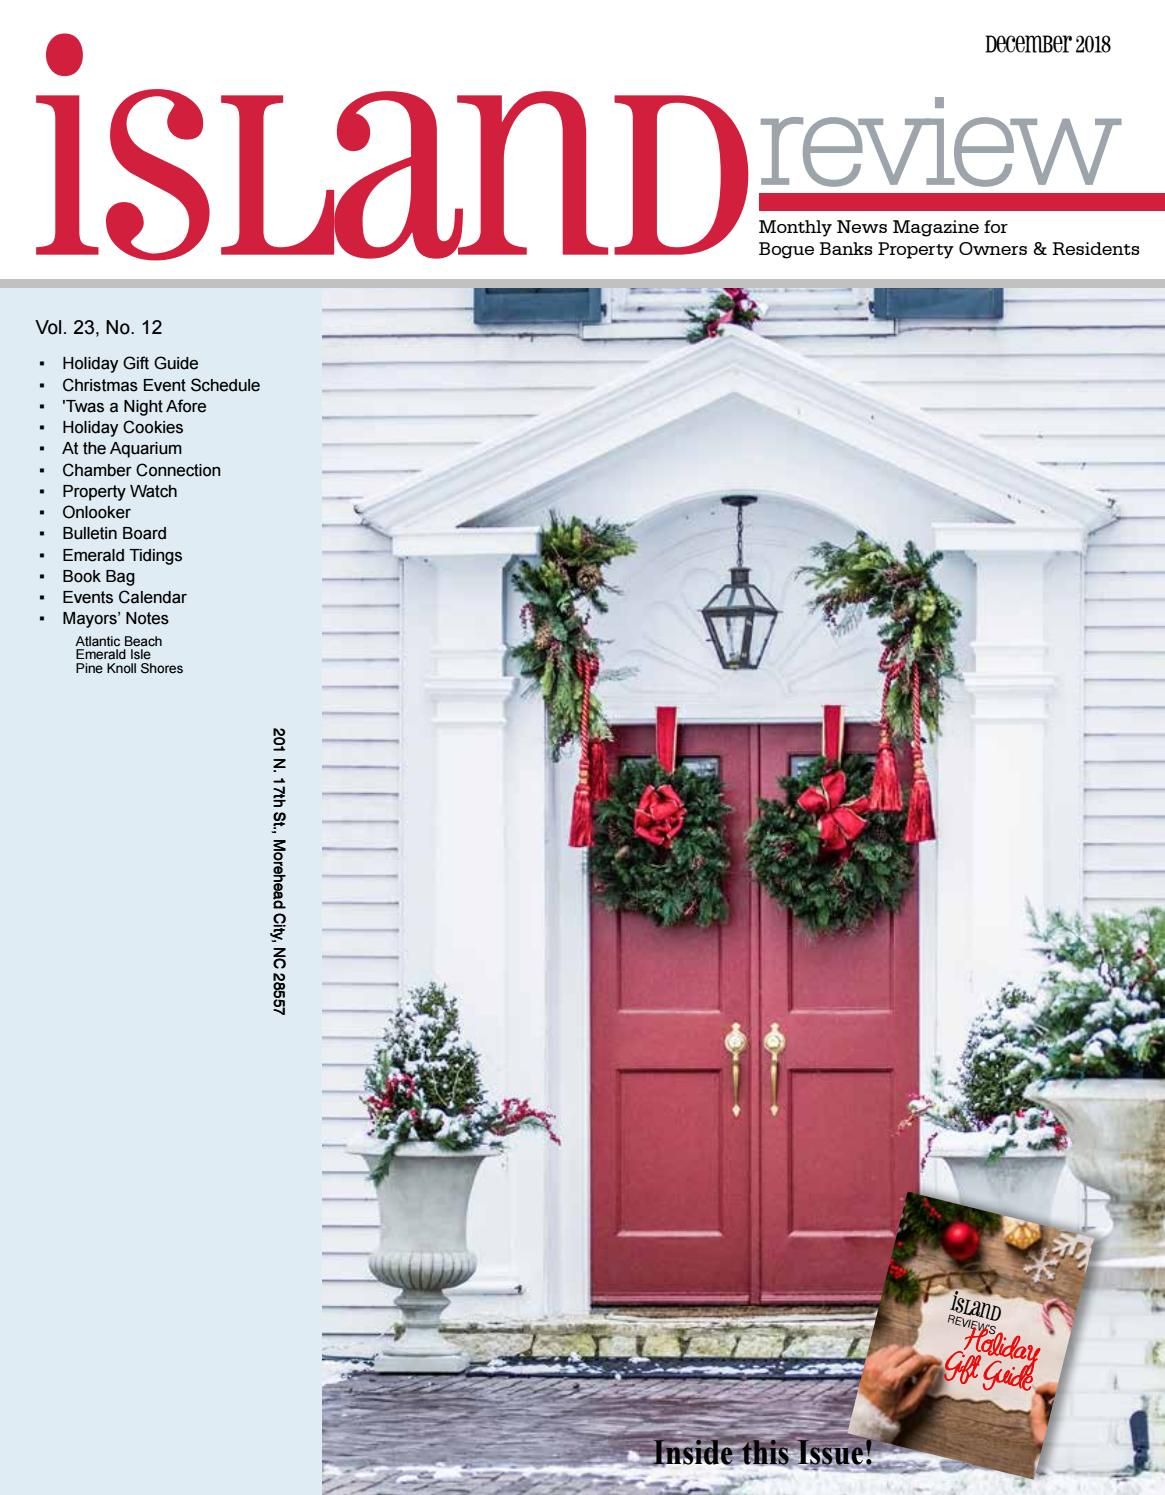 Island Review, December 2018 by NCCOAST - issuu